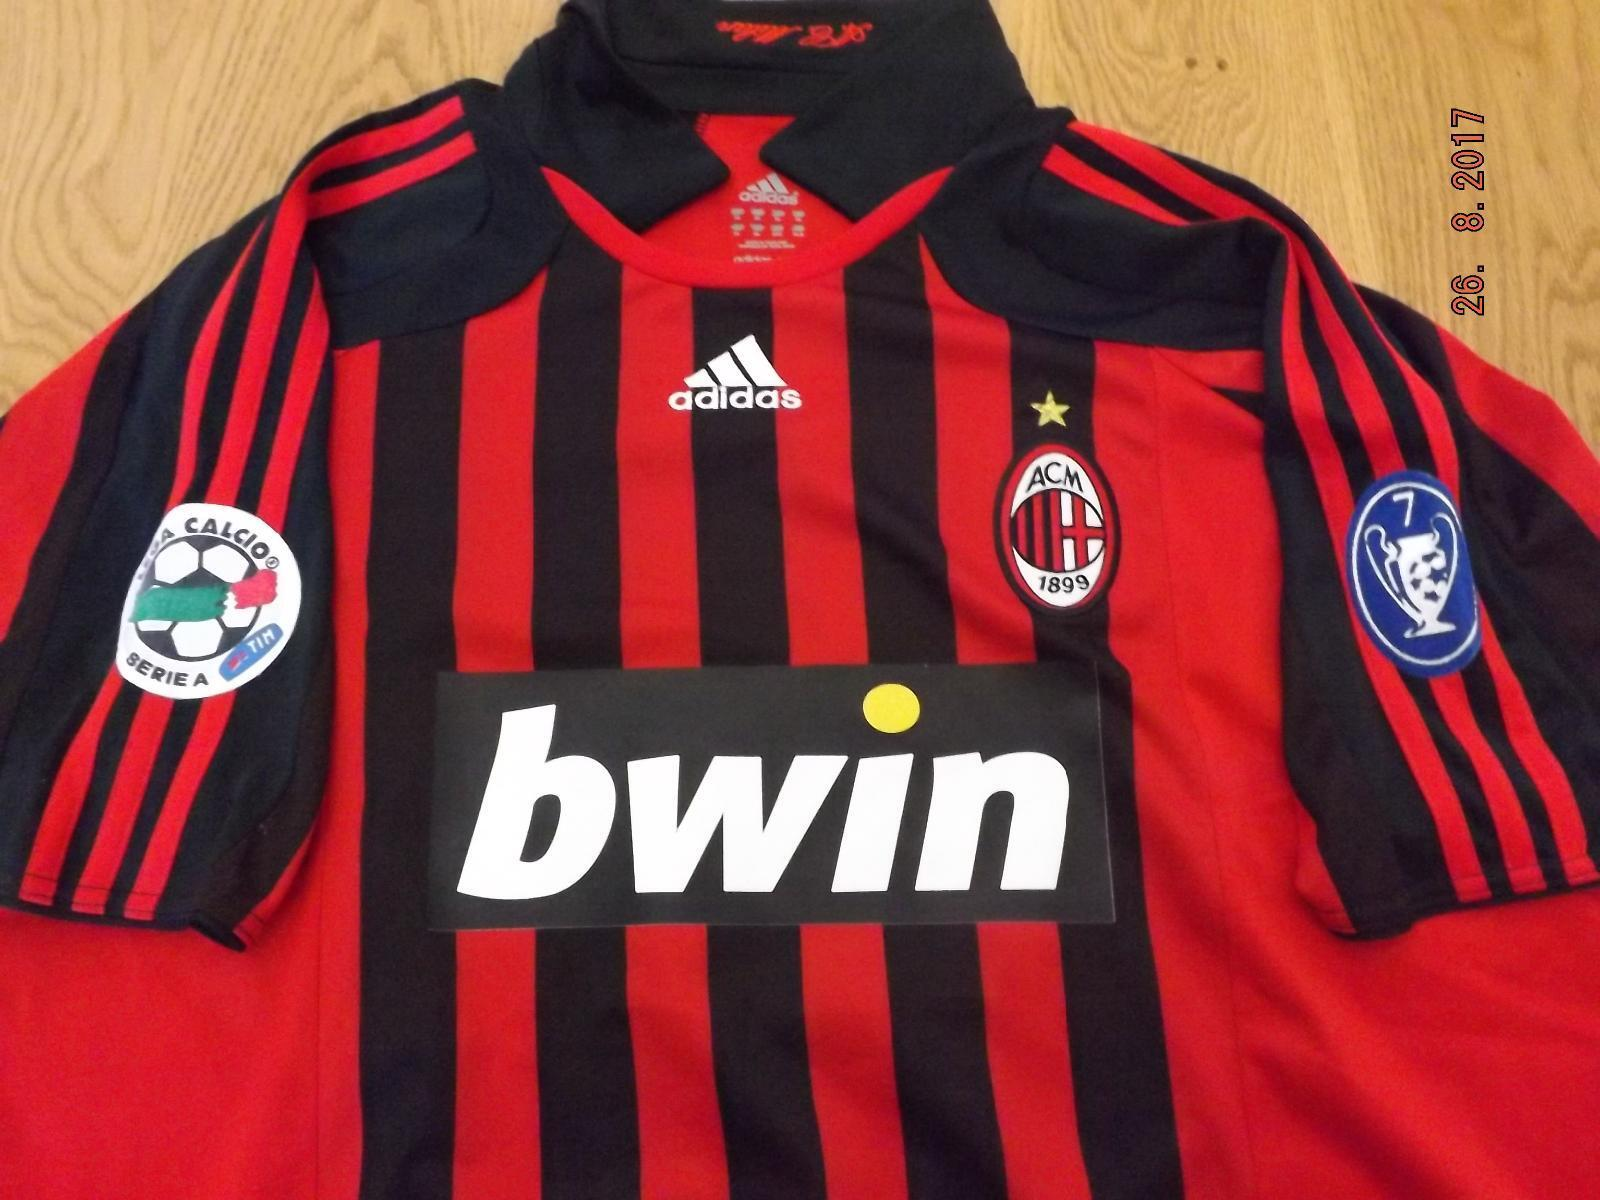 EMERSON MILAN 200708 MAGLIA SHIRT WORN ISSUED MATCH ADIDAS KAKA SHEVCHENKO